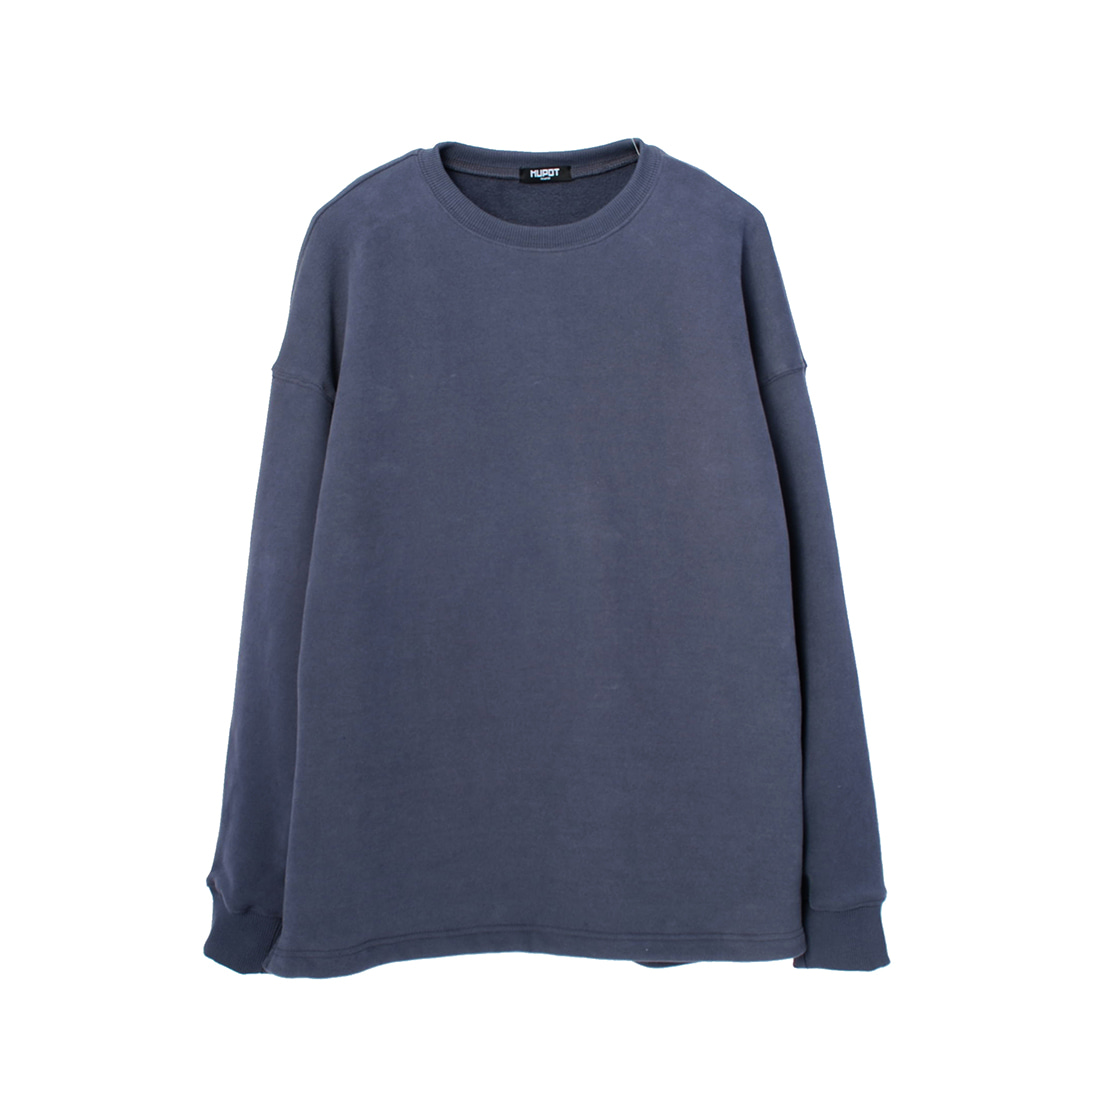 BLUE GRAY BIG SHOULDER SWEATER